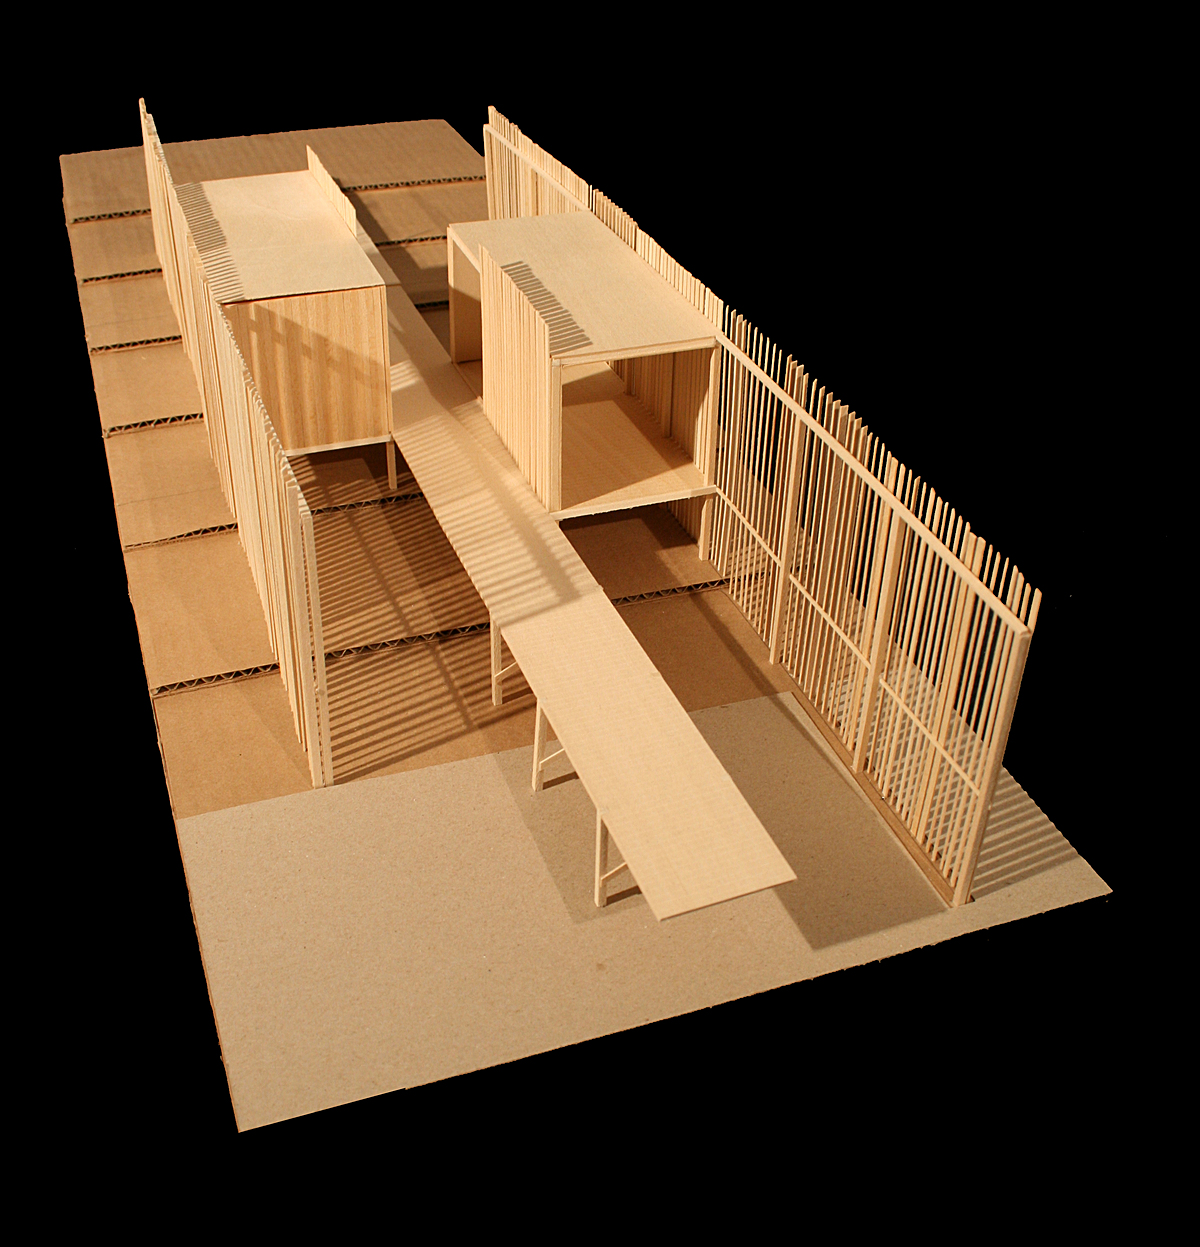 Physical Model 1/4 Scale